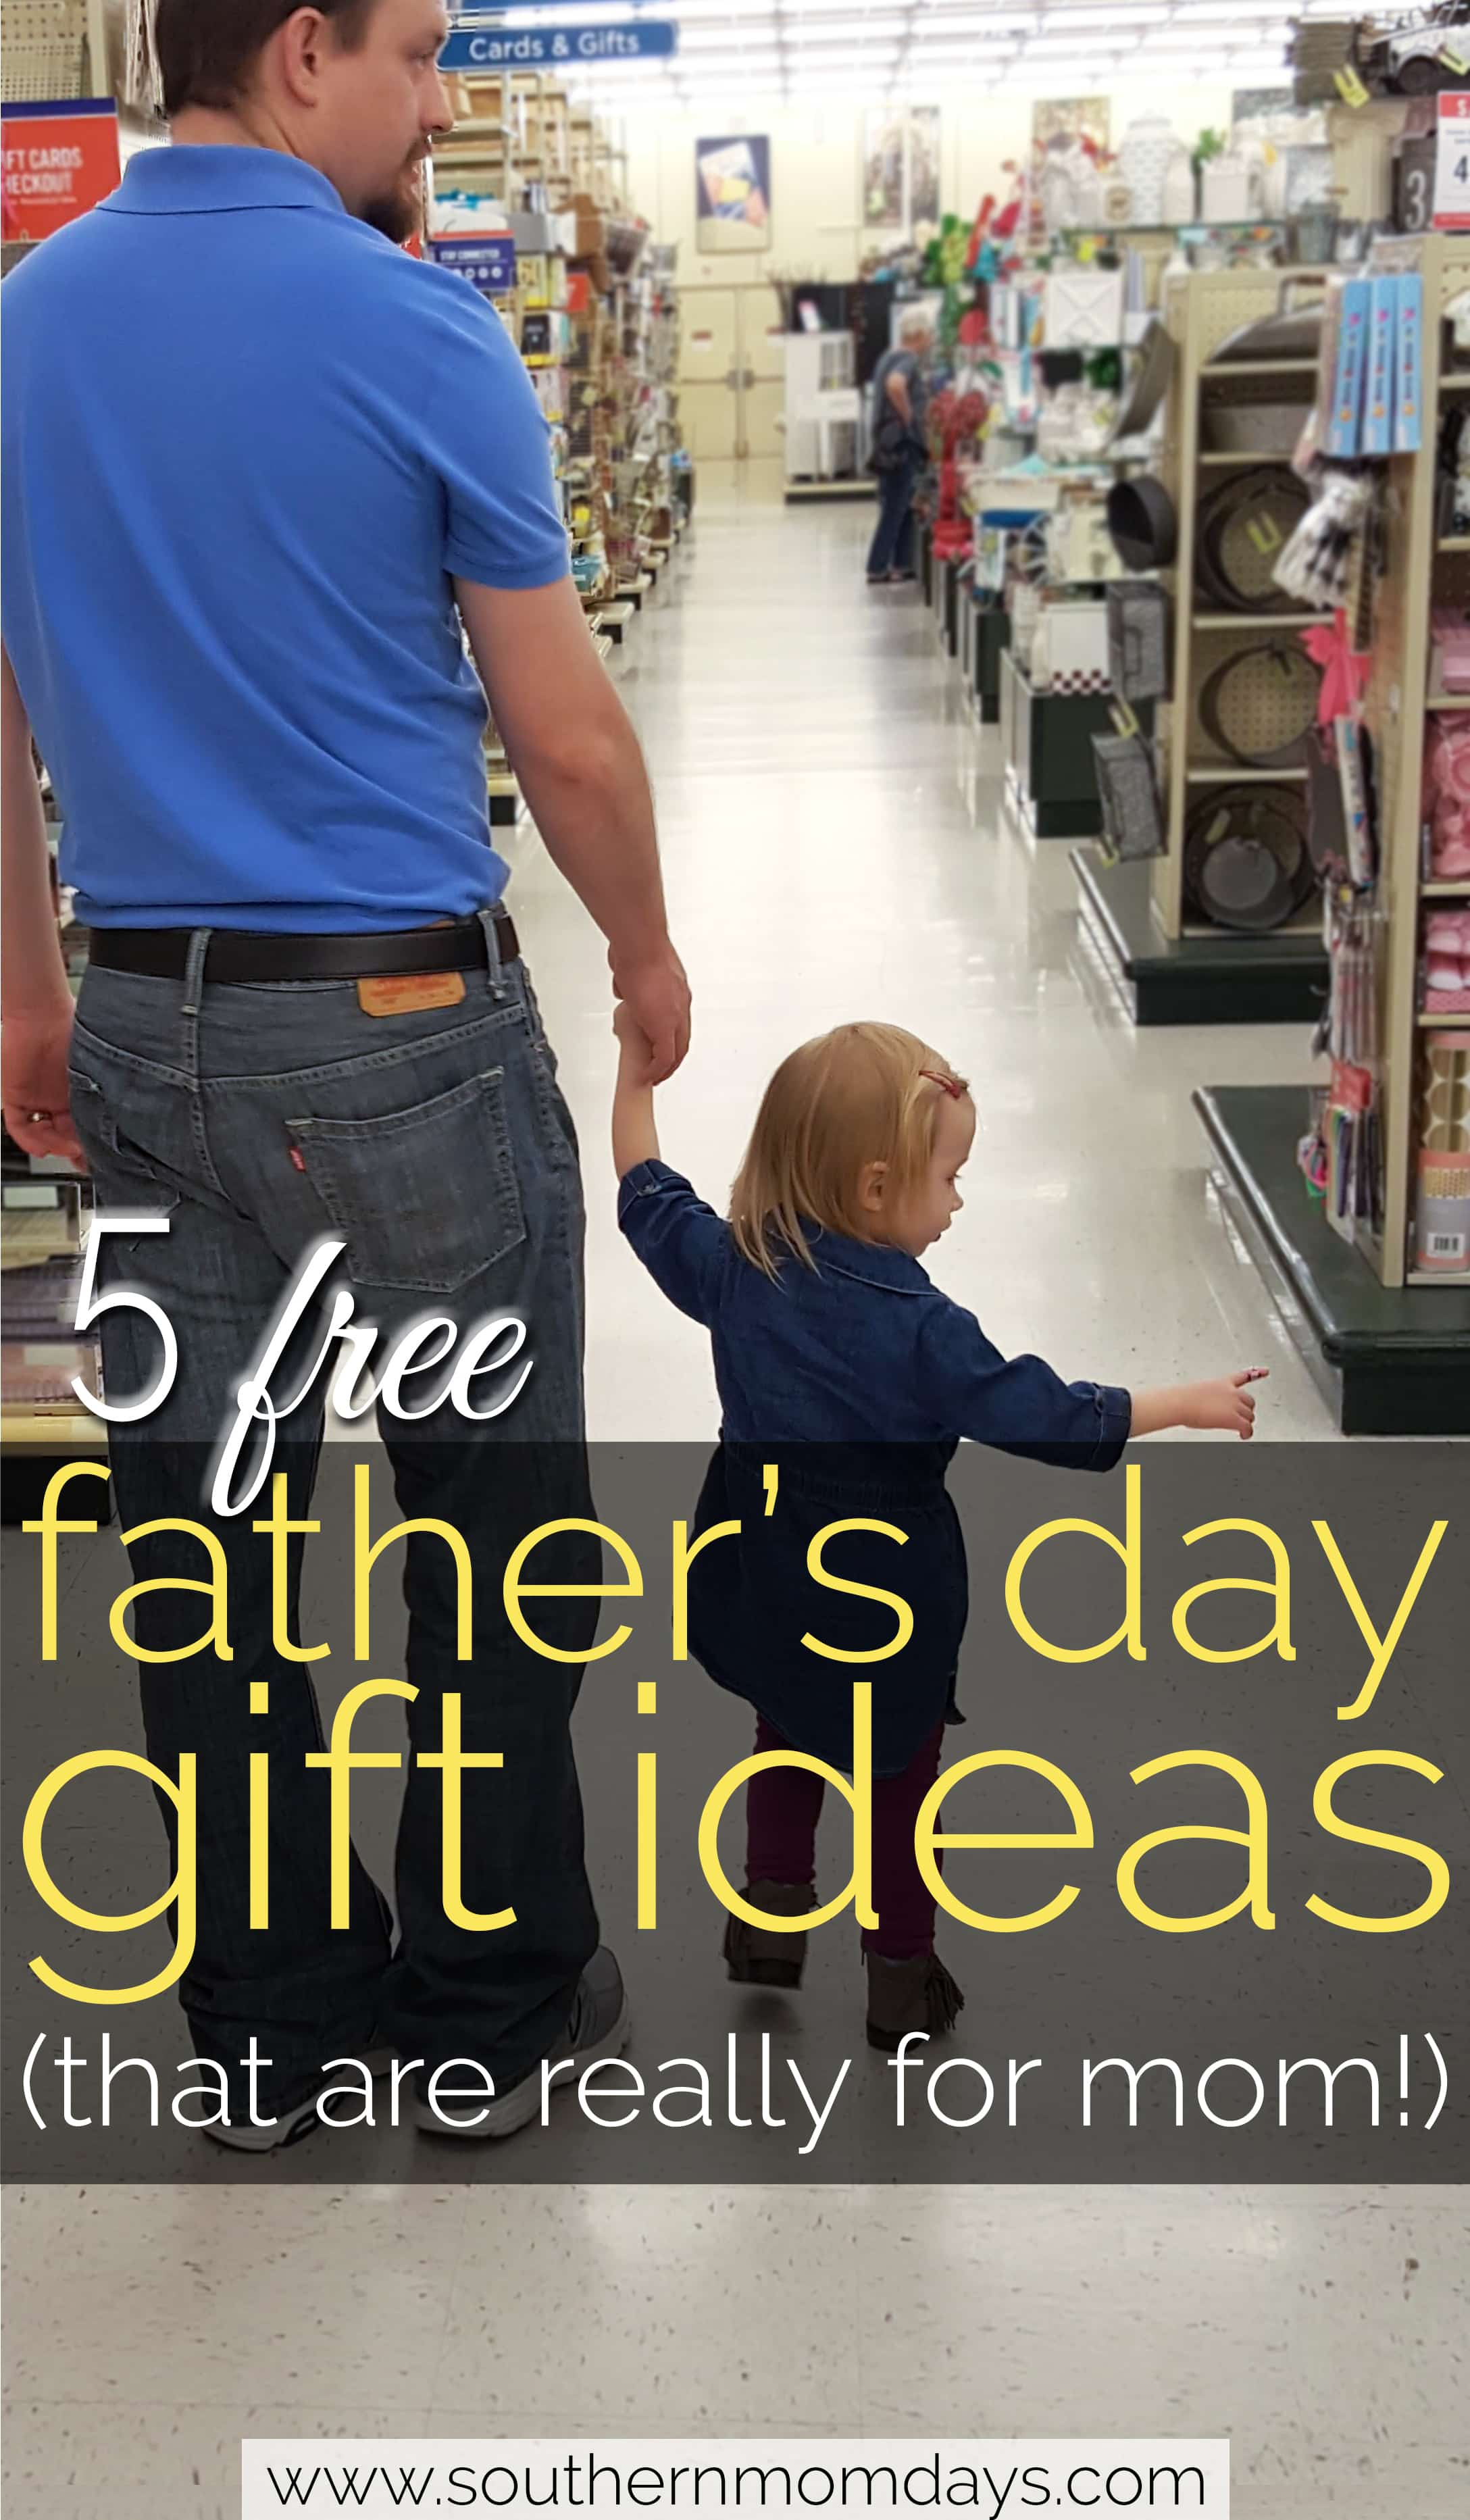 5 Free Father's Day Gift Ideas (That Are Really for Mom!), featured on Southern Momdays